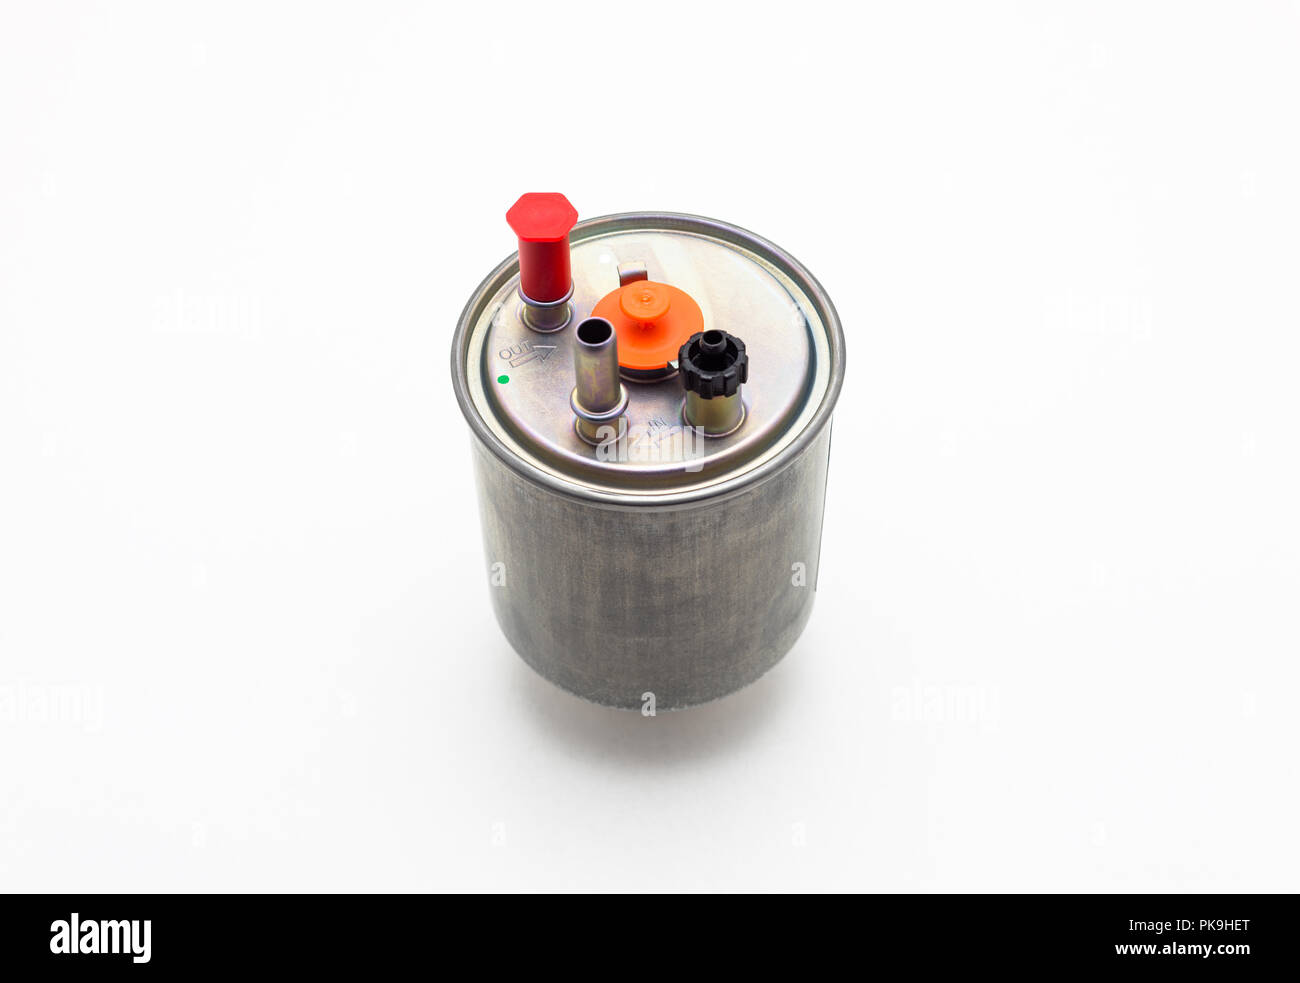 Diesel Fuel Filter Stock Photos Images Engine Car For Isolated On A White Background With Clipping Path